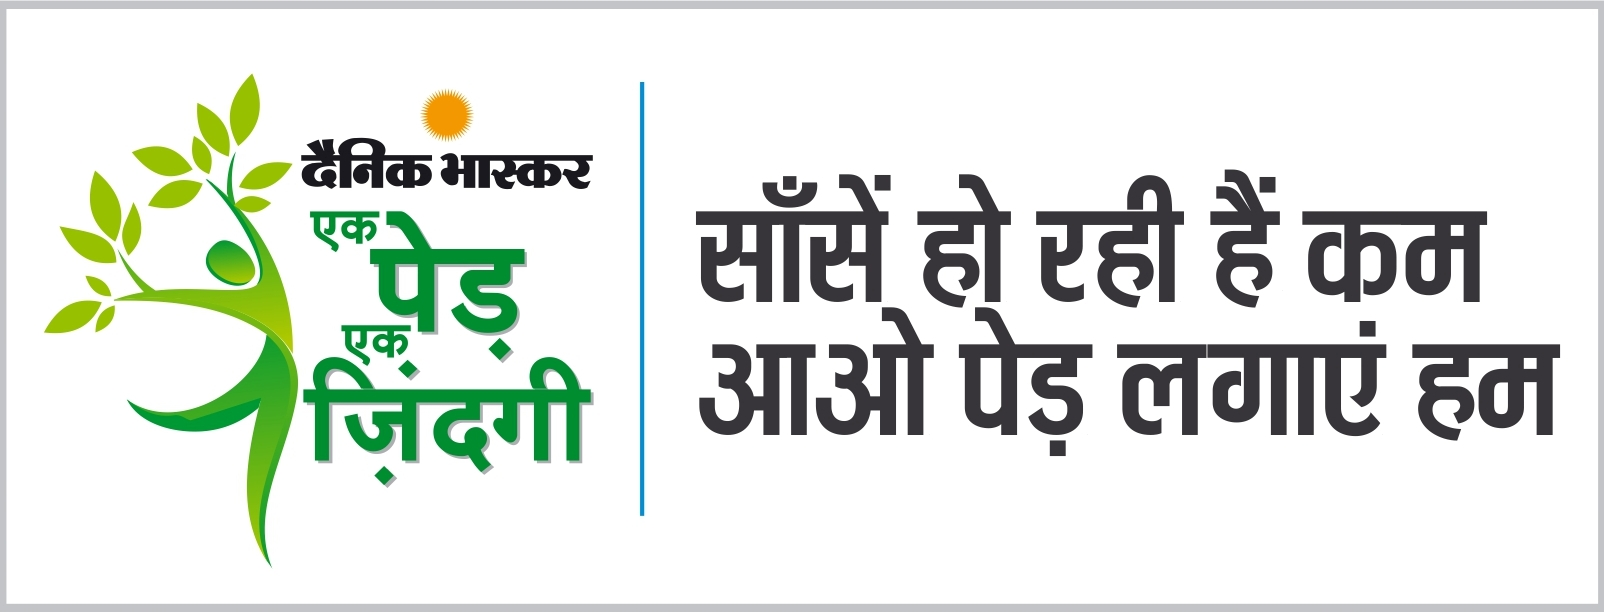 Ek Ped Ek Zindagi: Dainik Bhaskar's CSR initiative to drive behavioral change towards plantation and nurturing of saplings